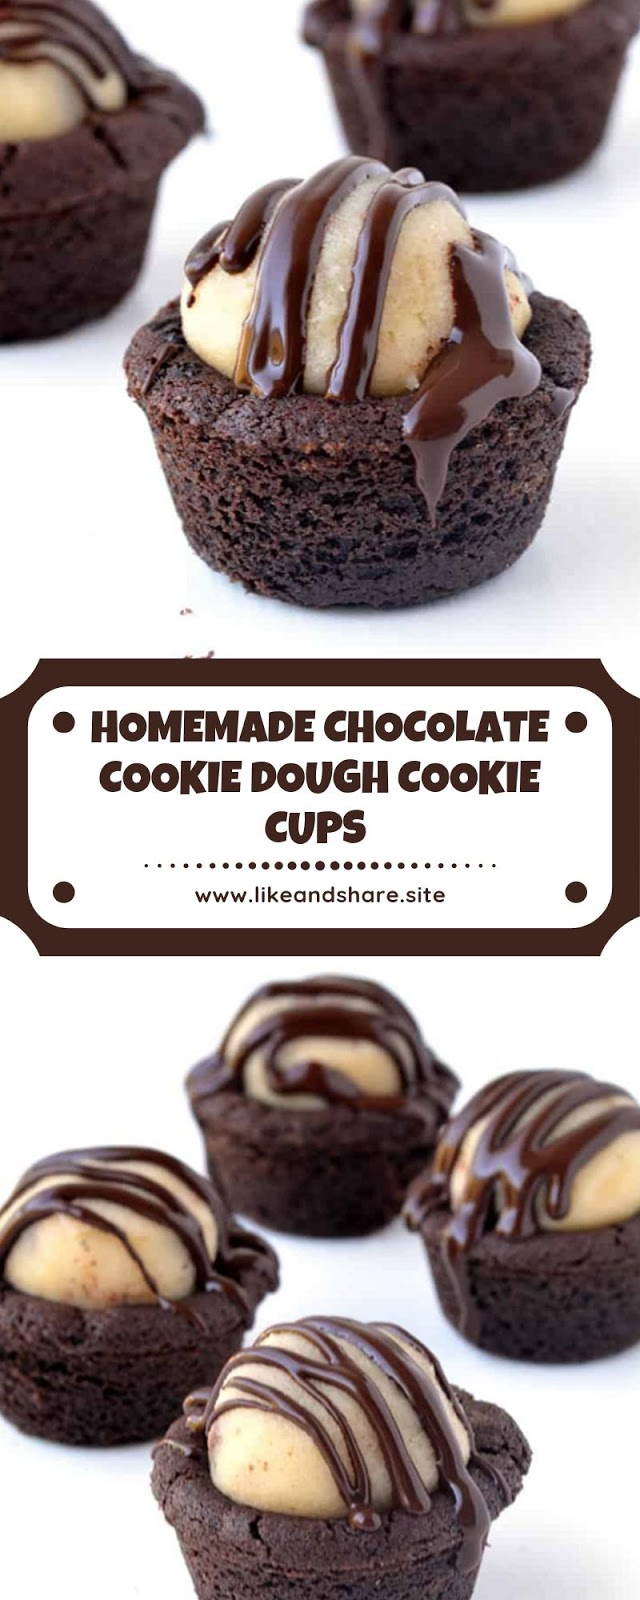 HOMEMADE CHOCOLATE COOKIE DOUGH COOKIE CUPS